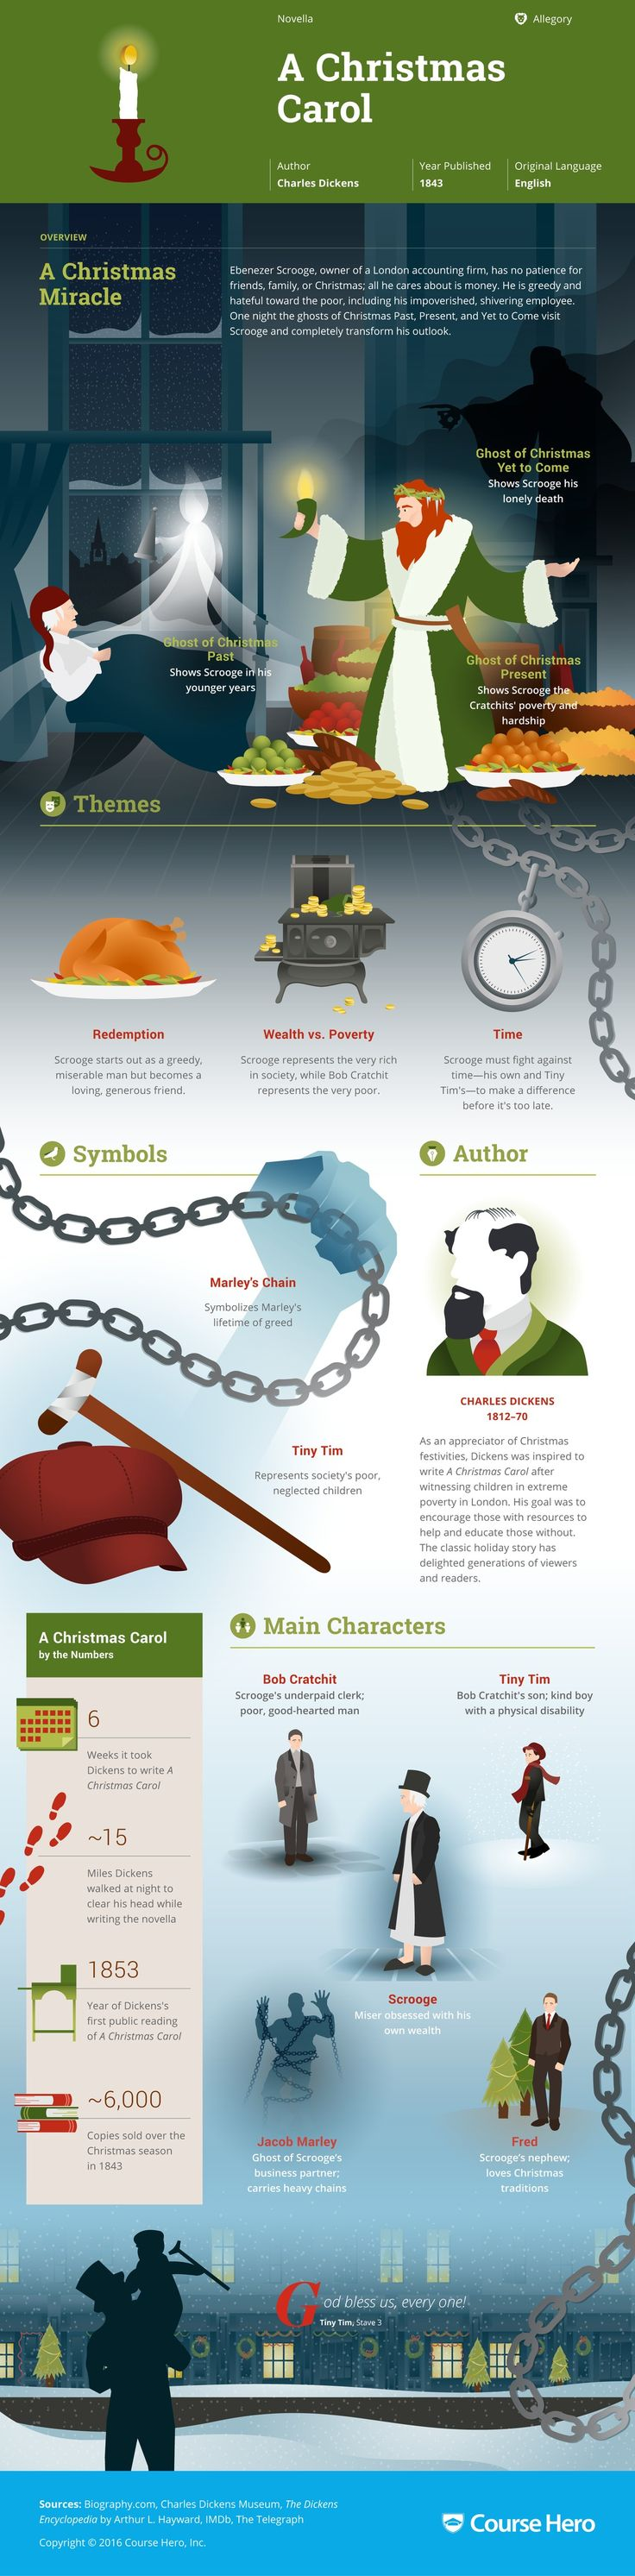 A Christmas Carol infographic | Course Hero